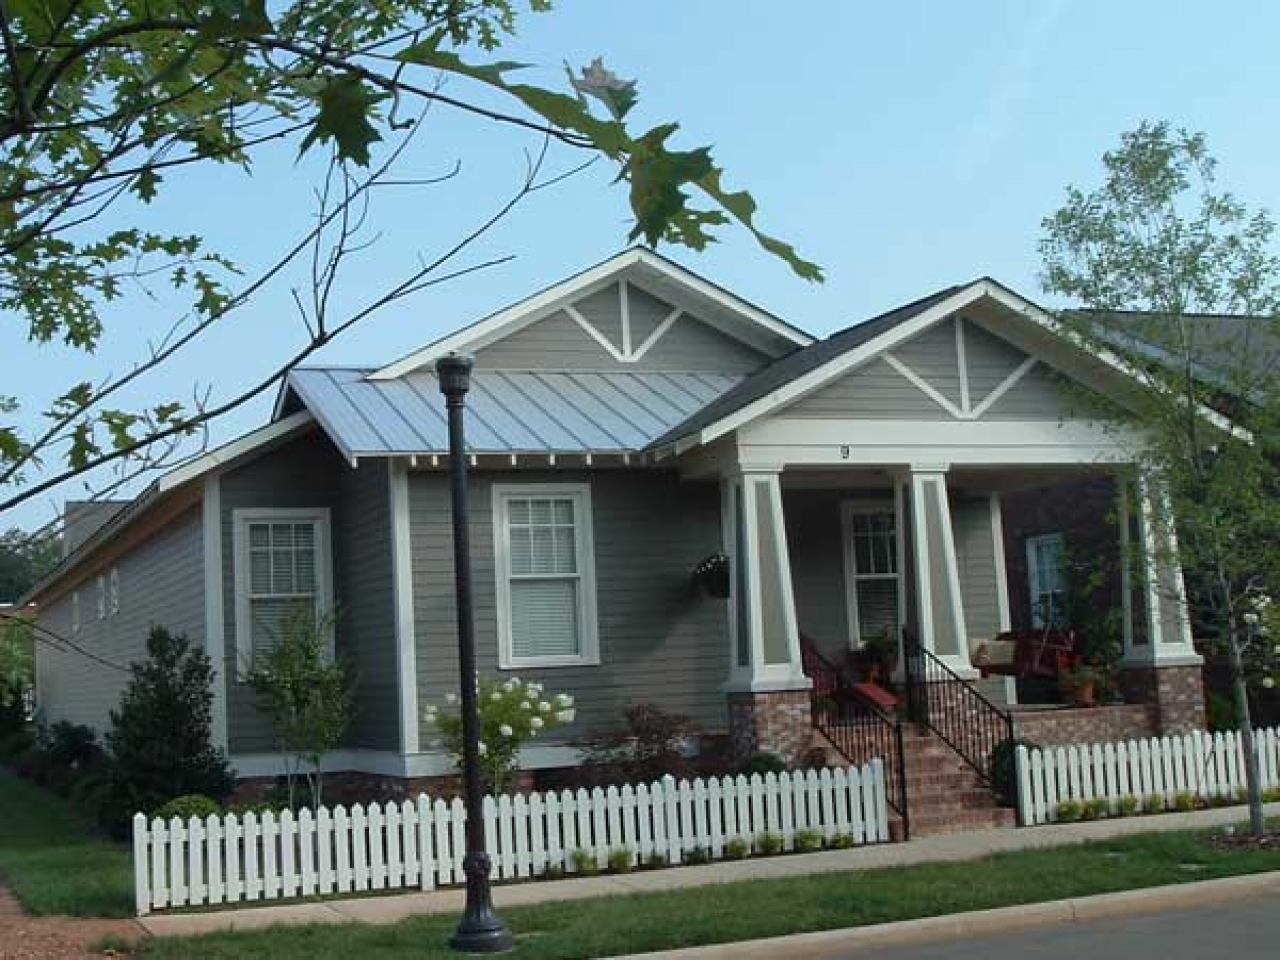 Craftsman style homes historic craftsman bungalow house for Craftsman bungalow designs